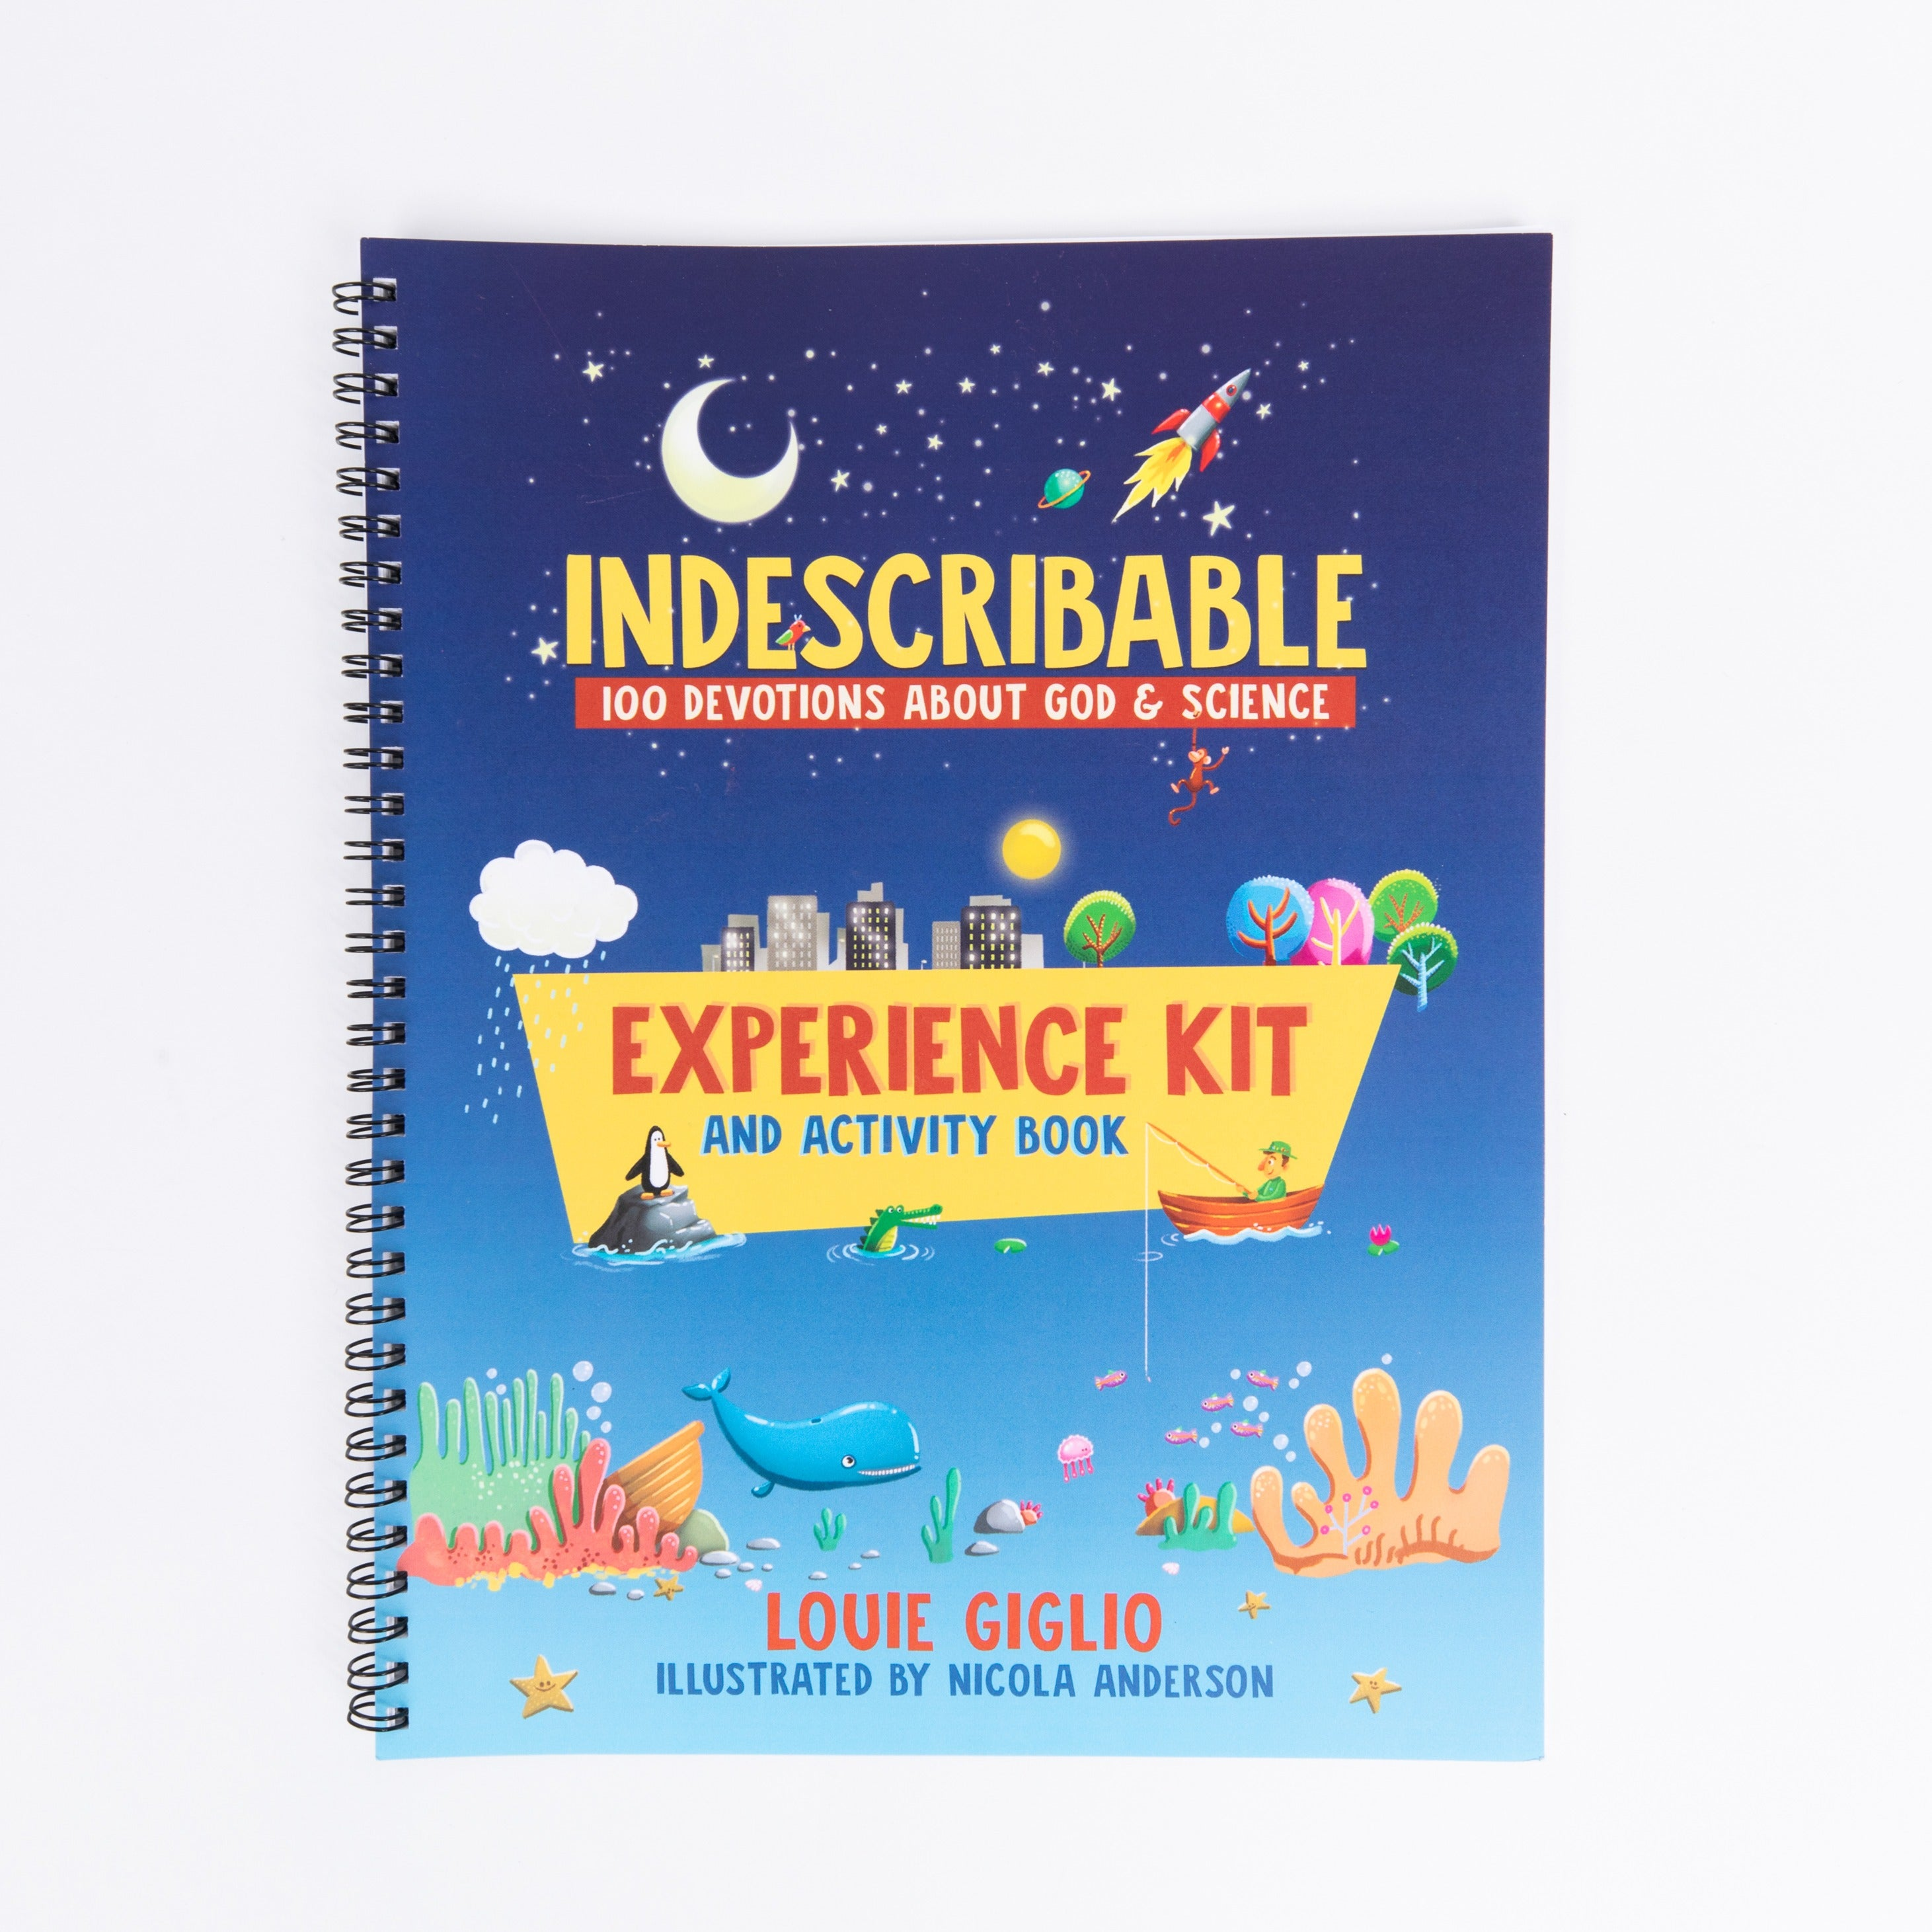 Indescribable: 100 Devotions About God and Science - Experience Kit